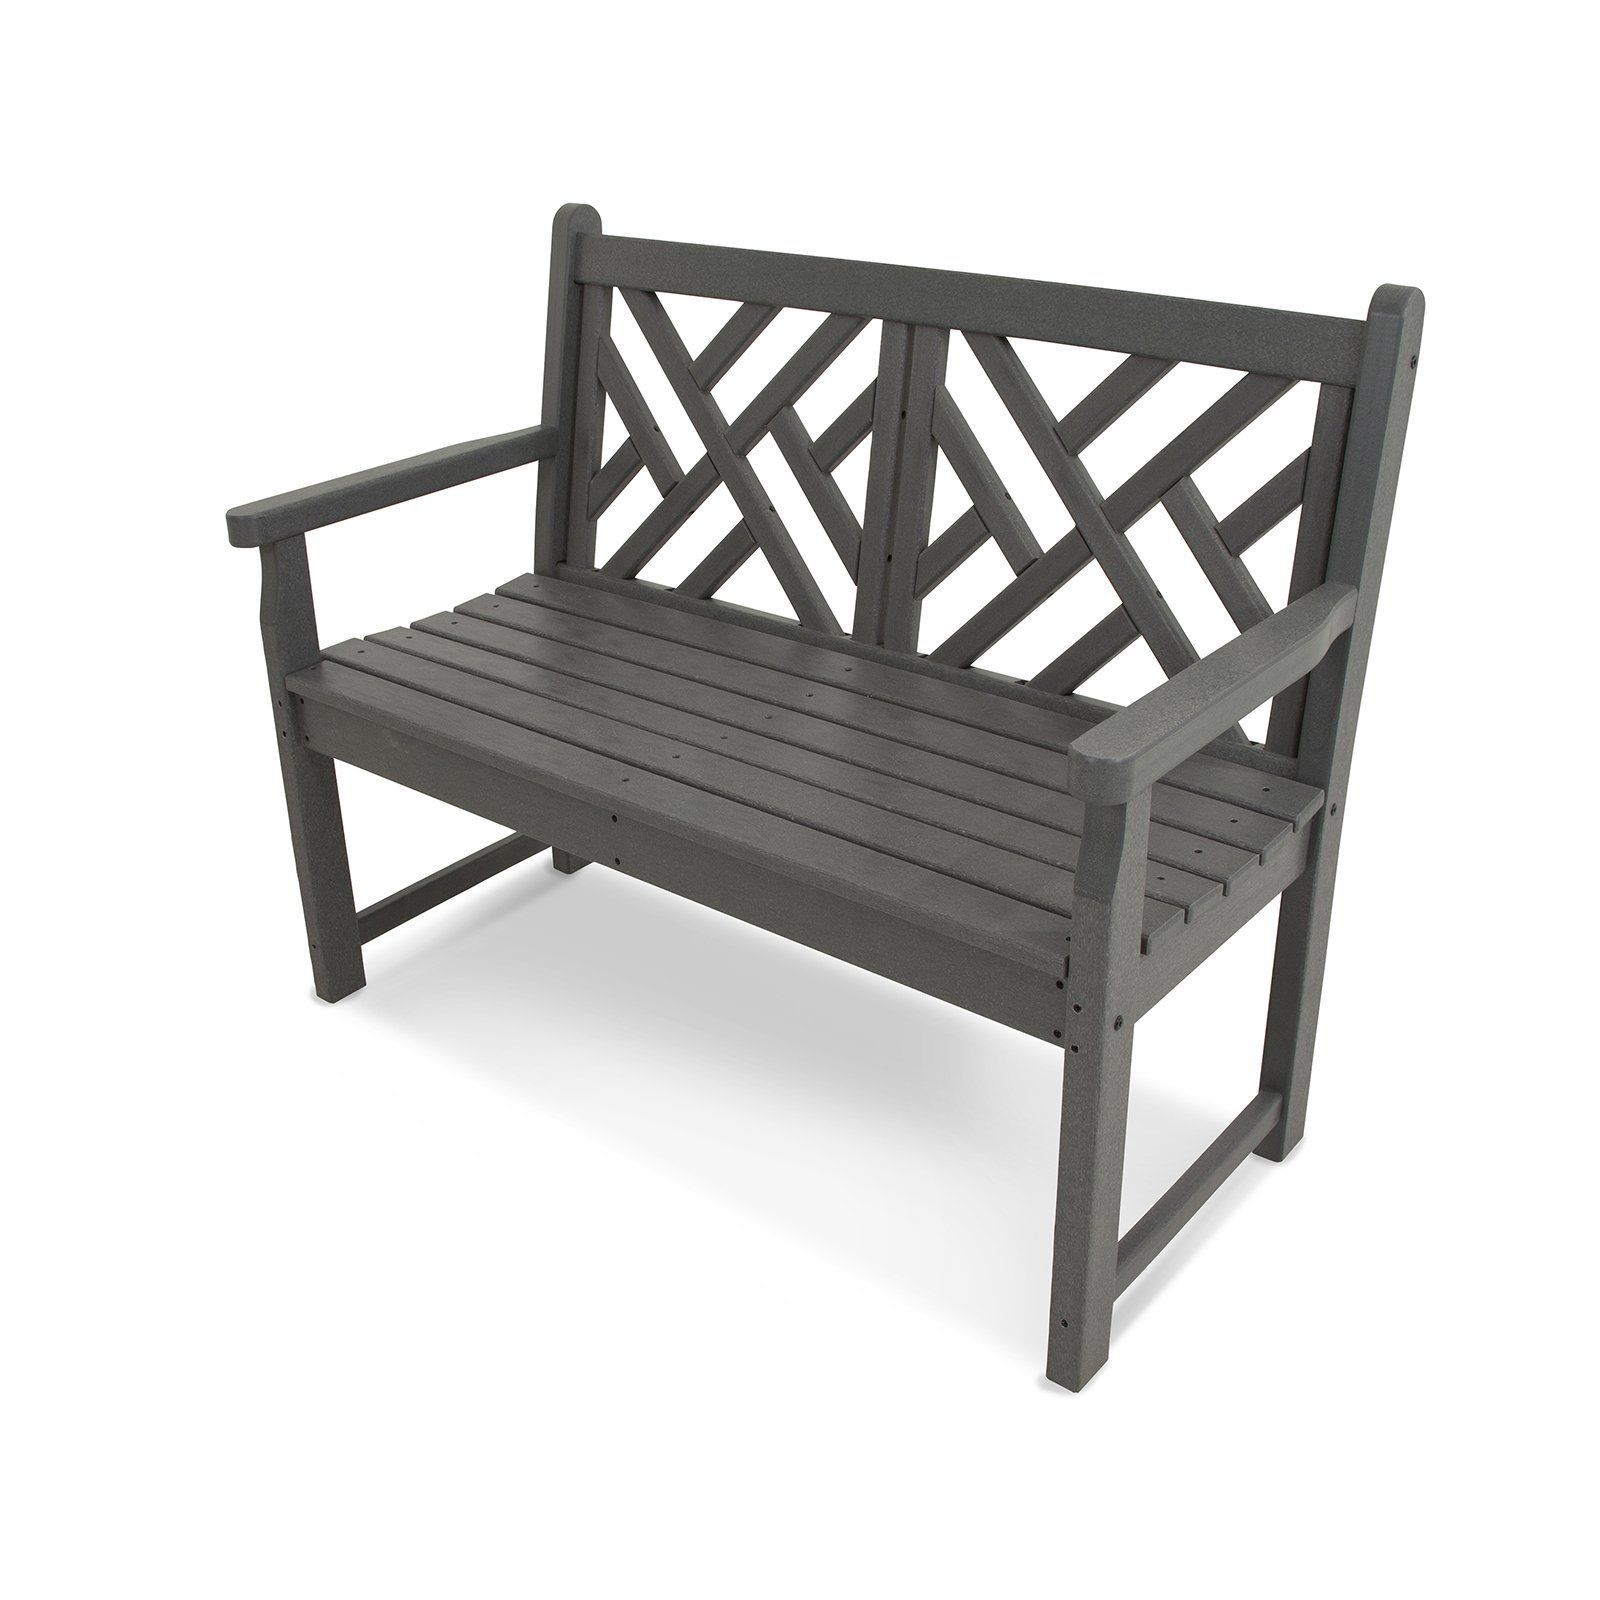 Pinmichelle Burmeister On Abcraftery Inspo In 2020 Throughout Michelle Metal Garden Benches (View 2 of 25)